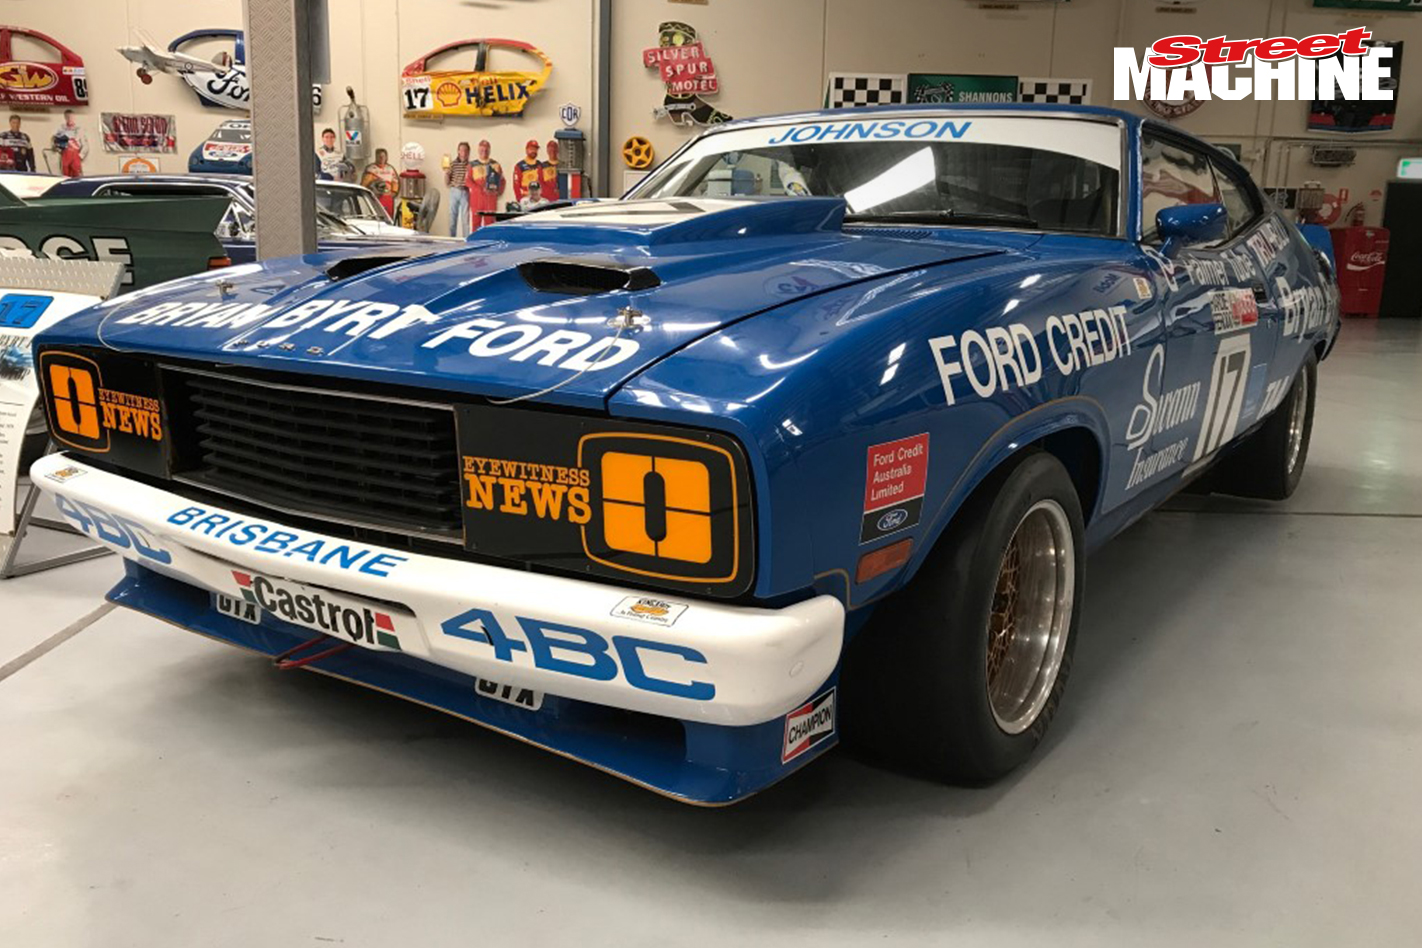 Genuine Ex Race Cars From The Golden Era Of Australian Motorsport Are Rarely Offered Particularly One With Such An Iconic Name As Dick Johnson Associated